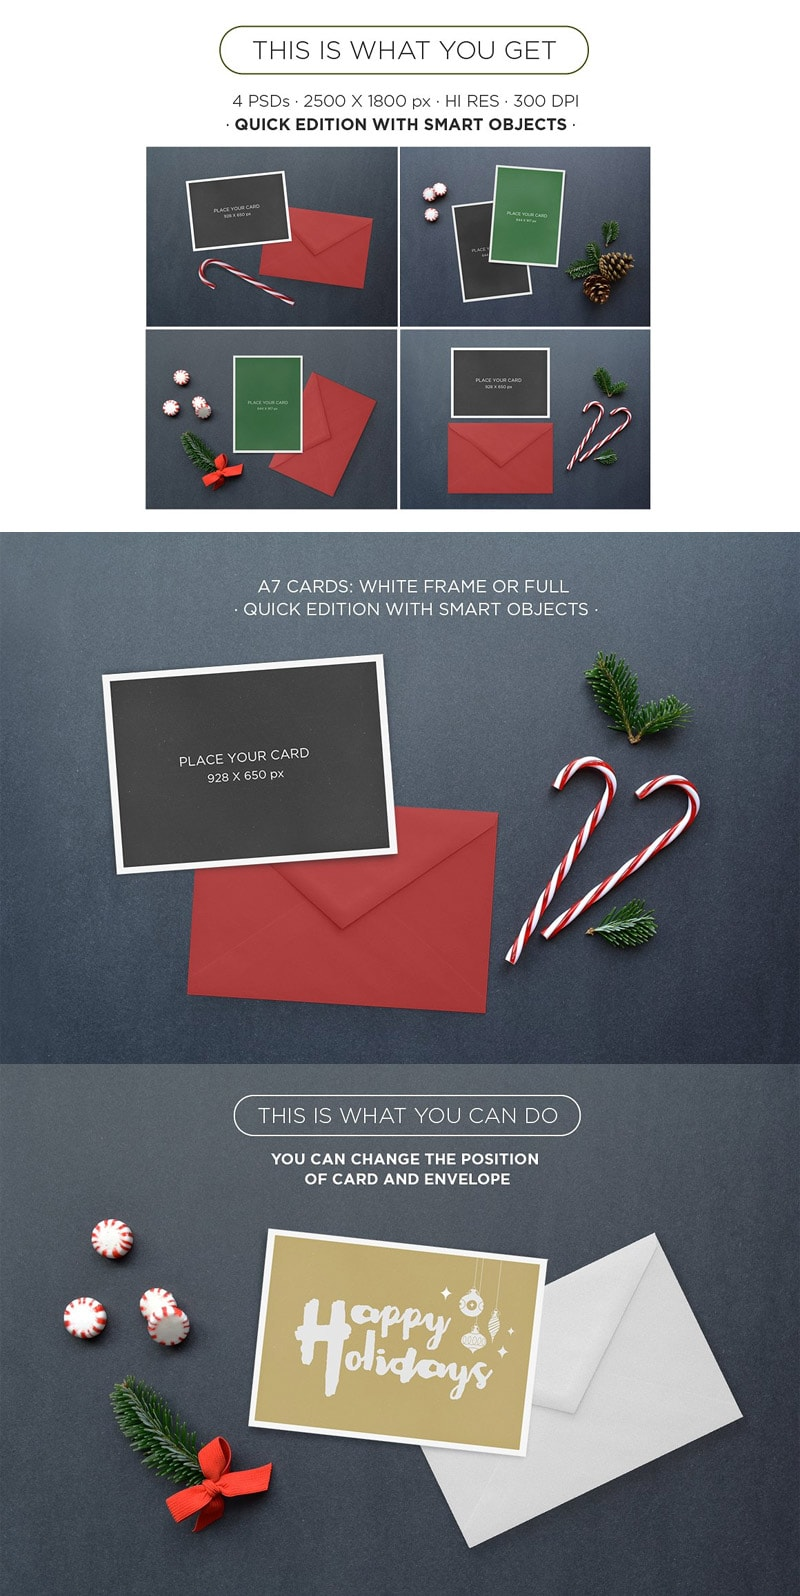 Xmas Greeting Cards Mockup Vol. 2